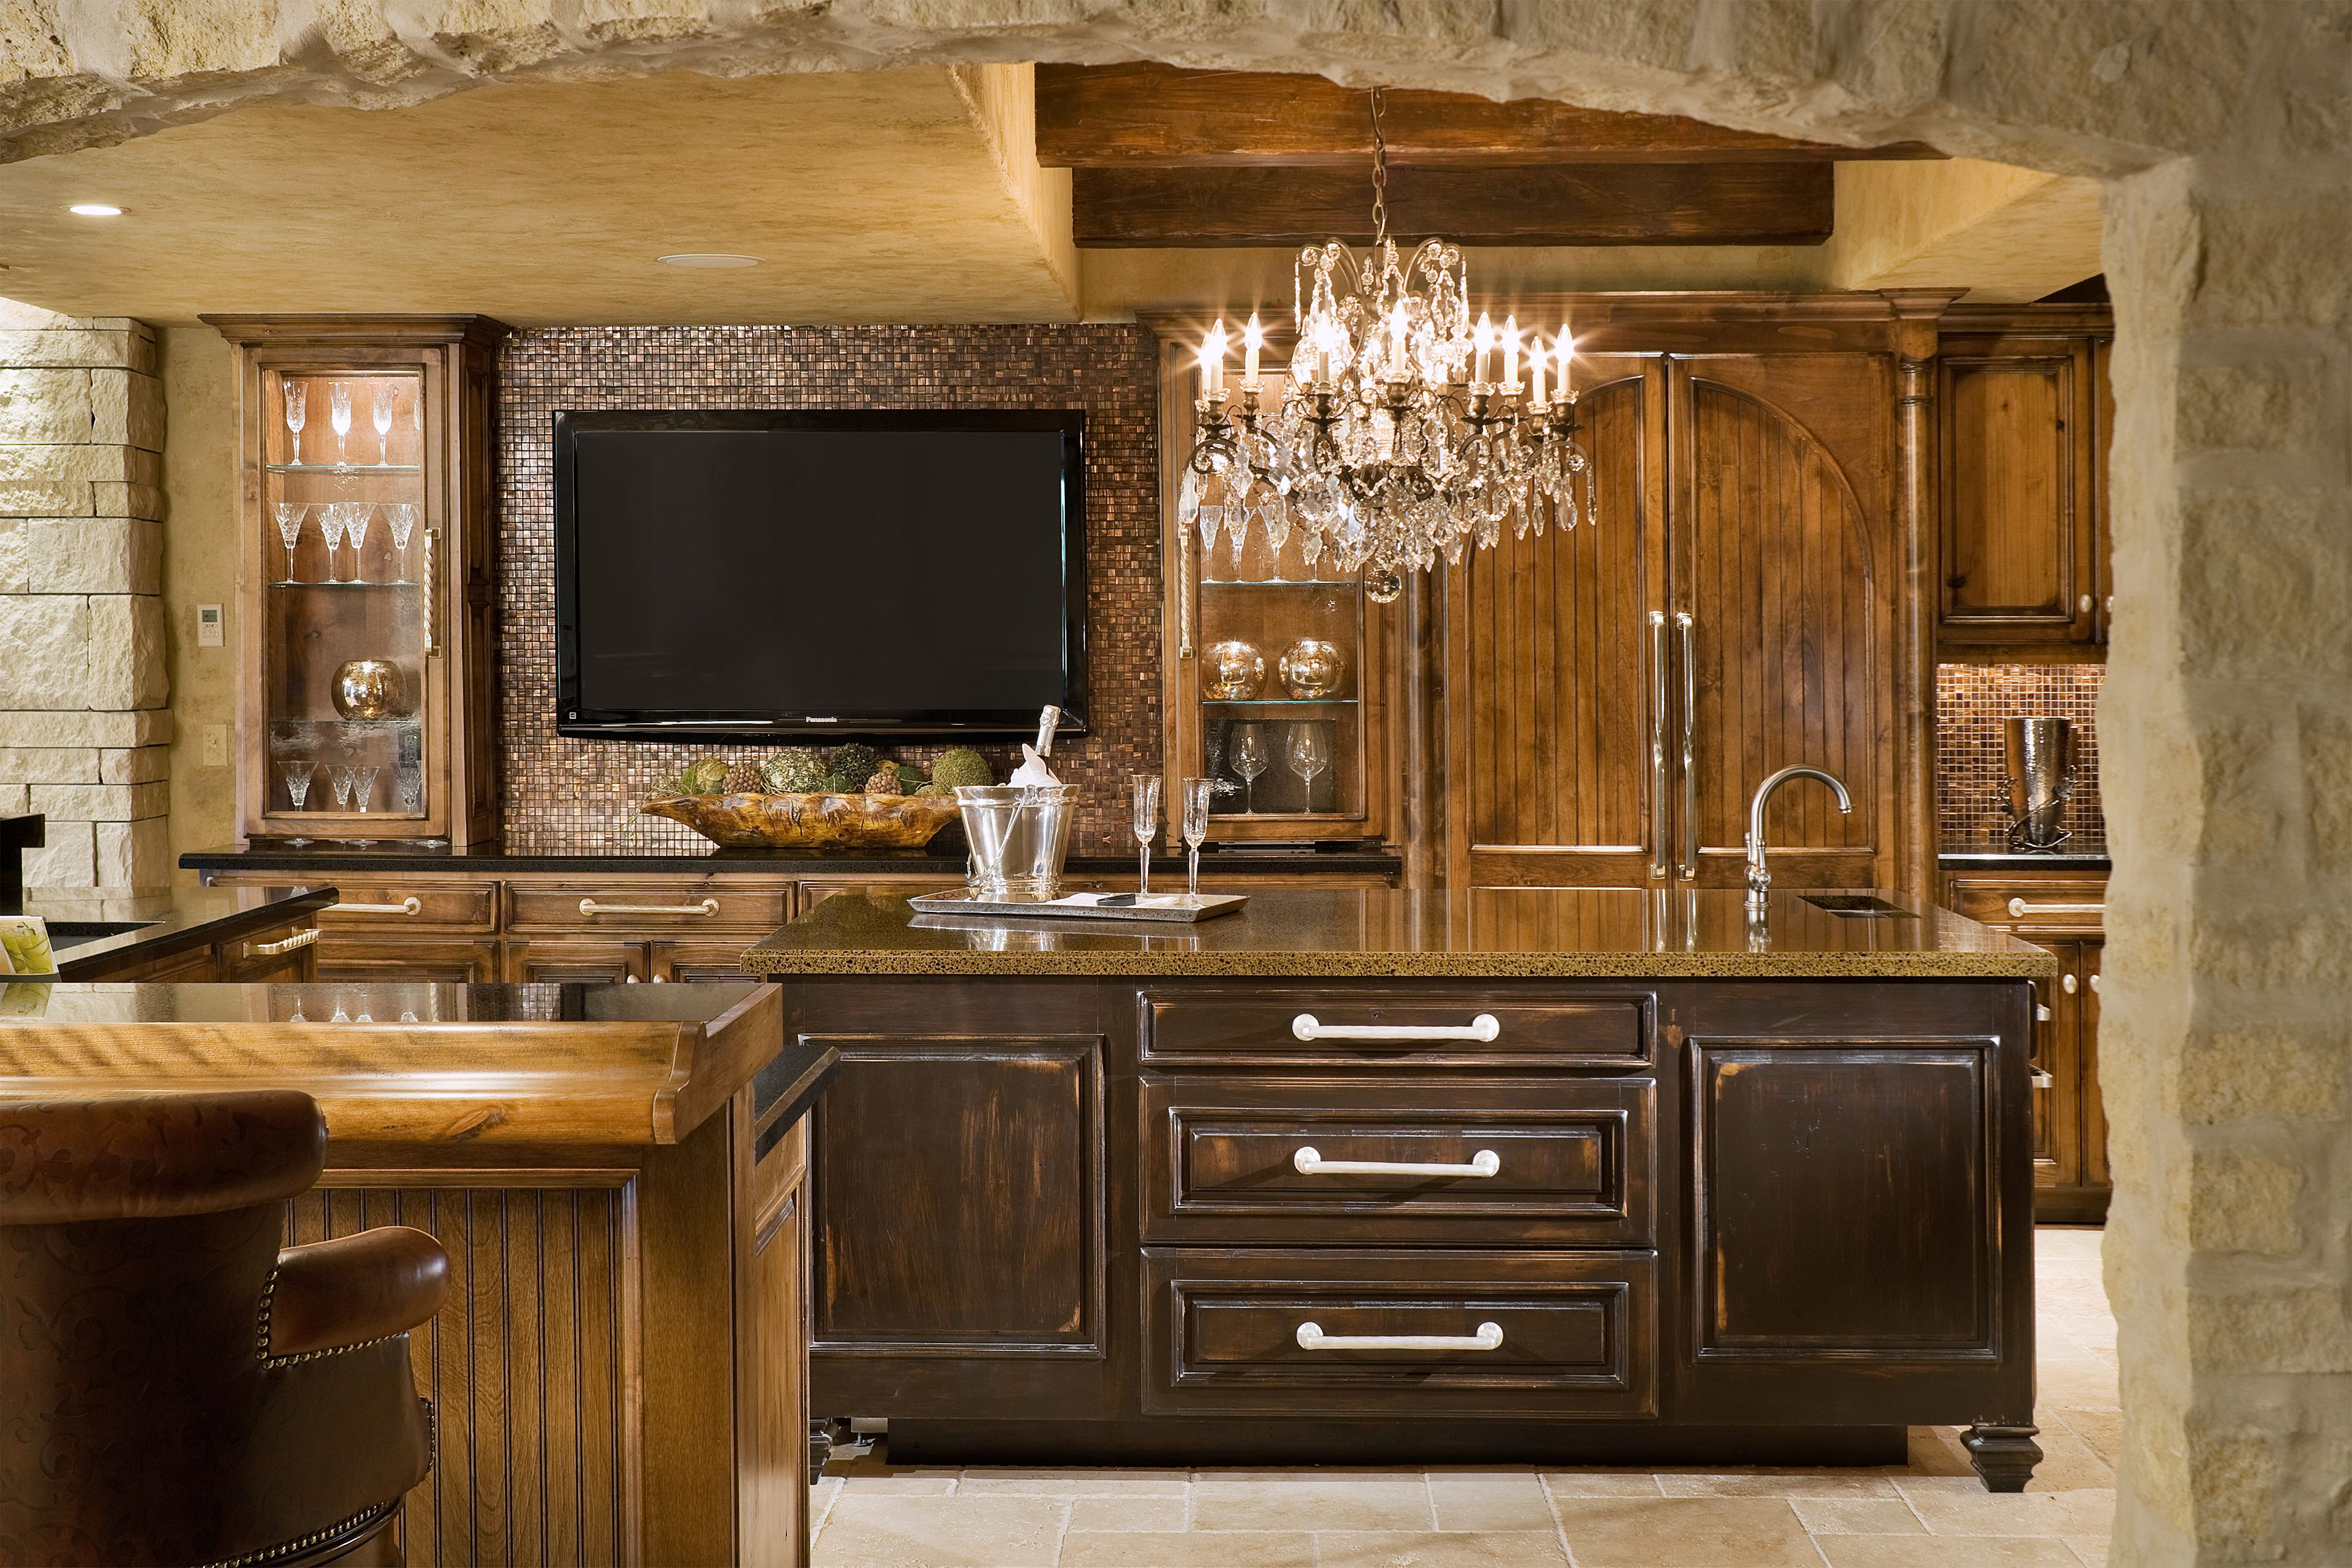 cabinetry vegas kitchen cabinet las cabinets wooden design services installation countertops and with modern linoleum remodel